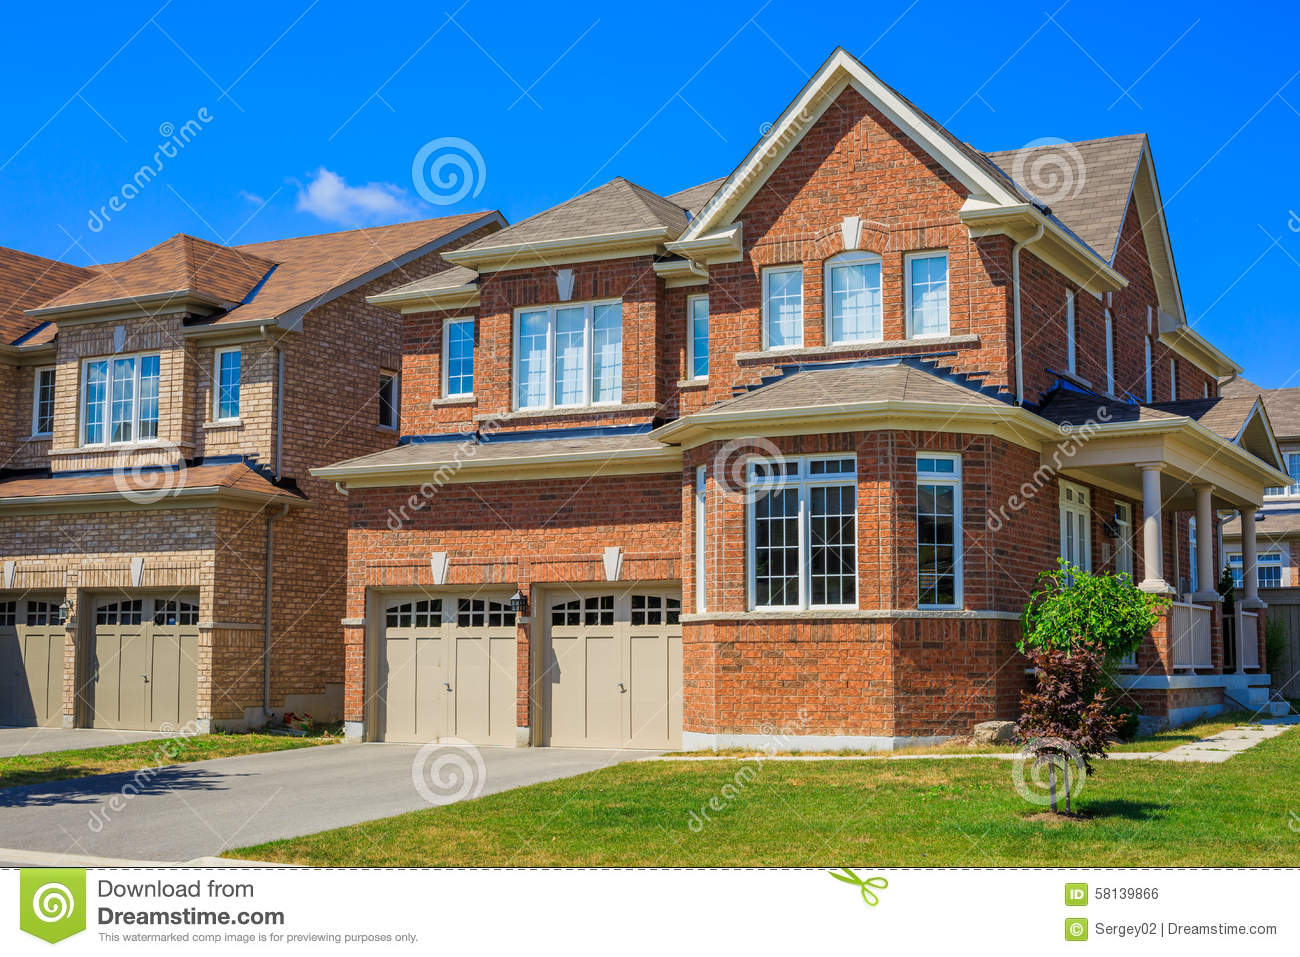 Astounding Luxury Houses In North America Stock Photo Image 58006351 Largest Home Design Picture Inspirations Pitcheantrous